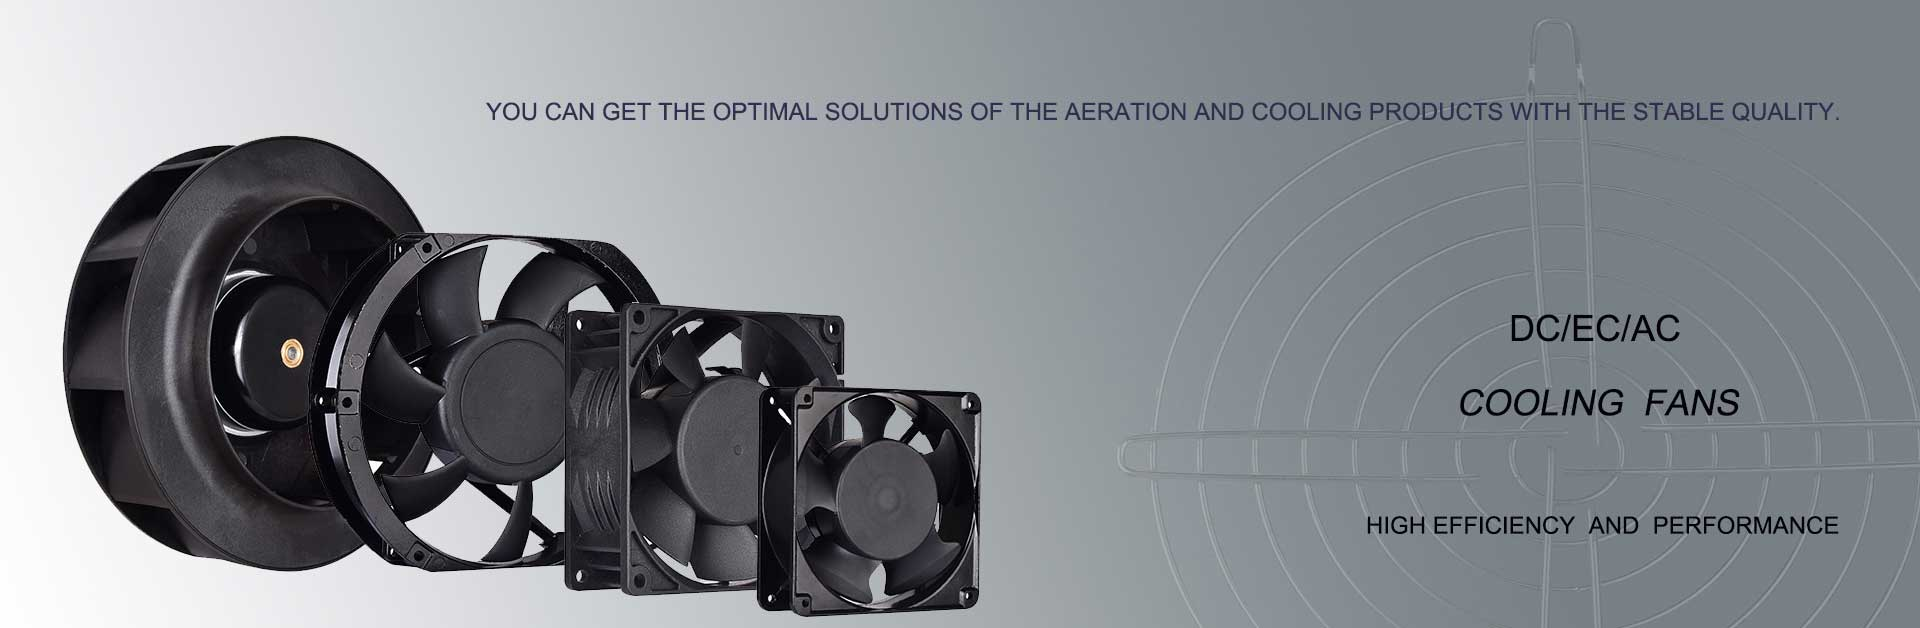 DC cooling fans, DC axial fan - Ruiapple Fans